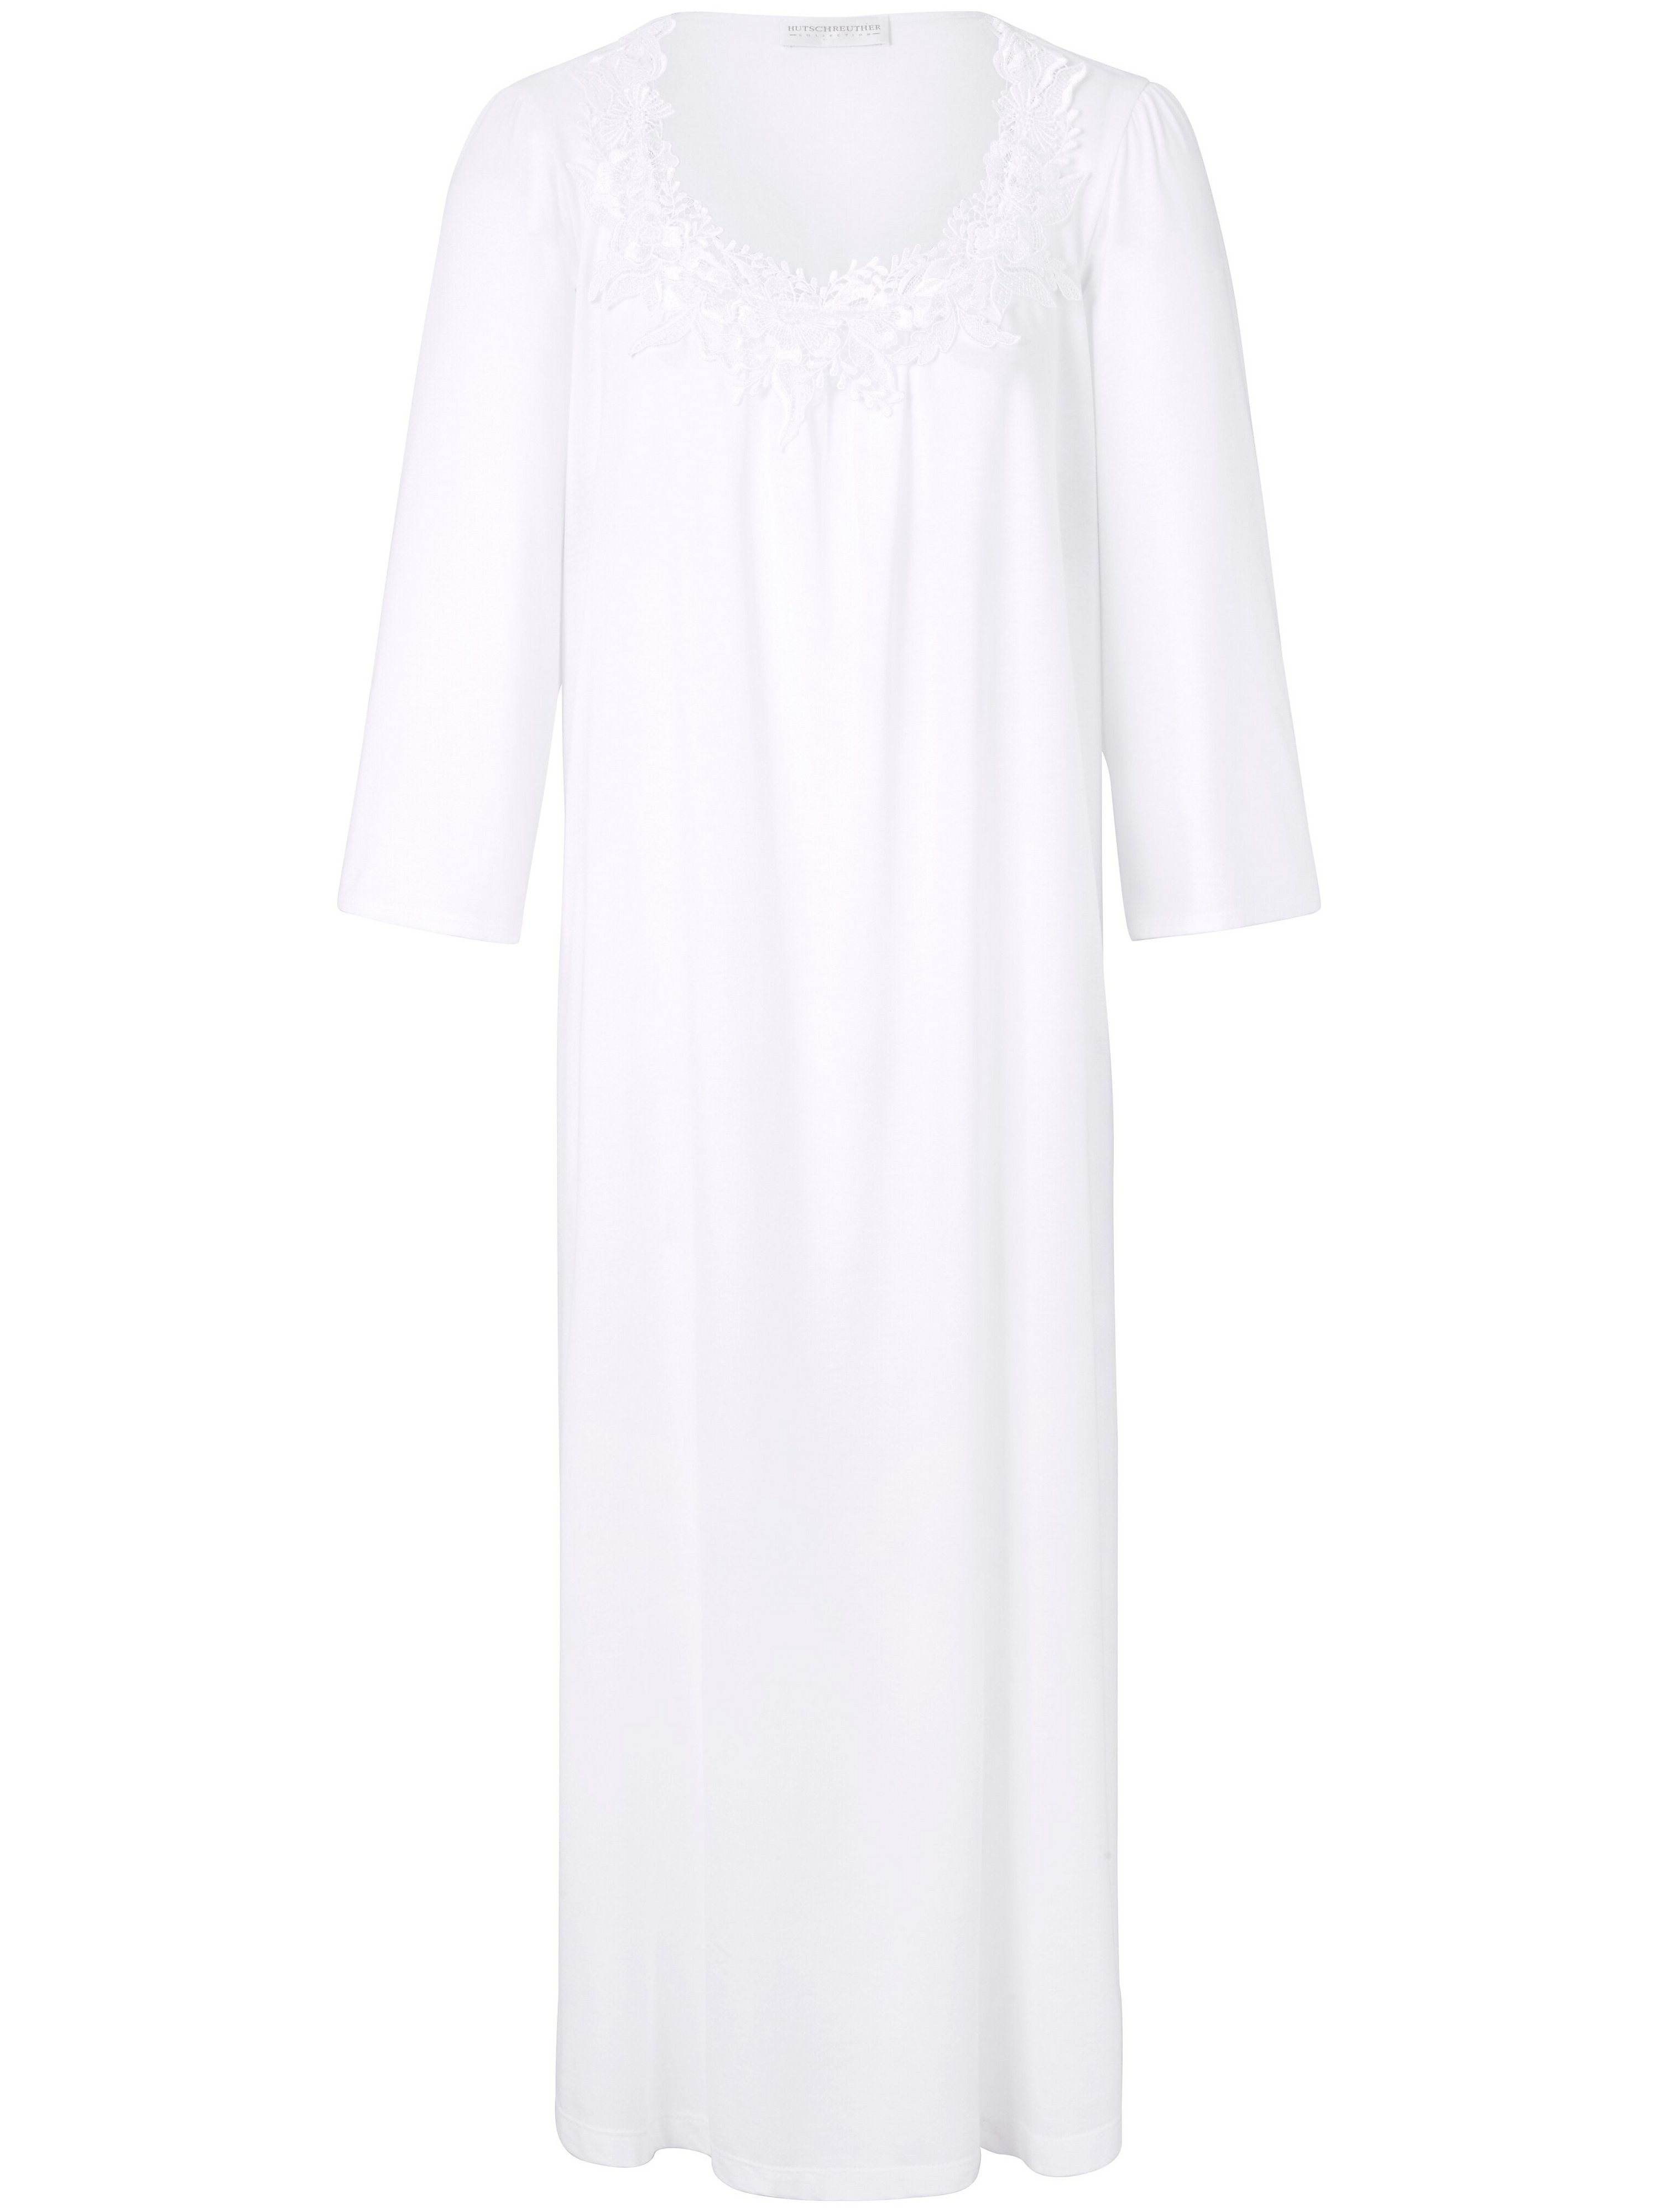 La chemise nuit  Hutschreuther blanc taille 46